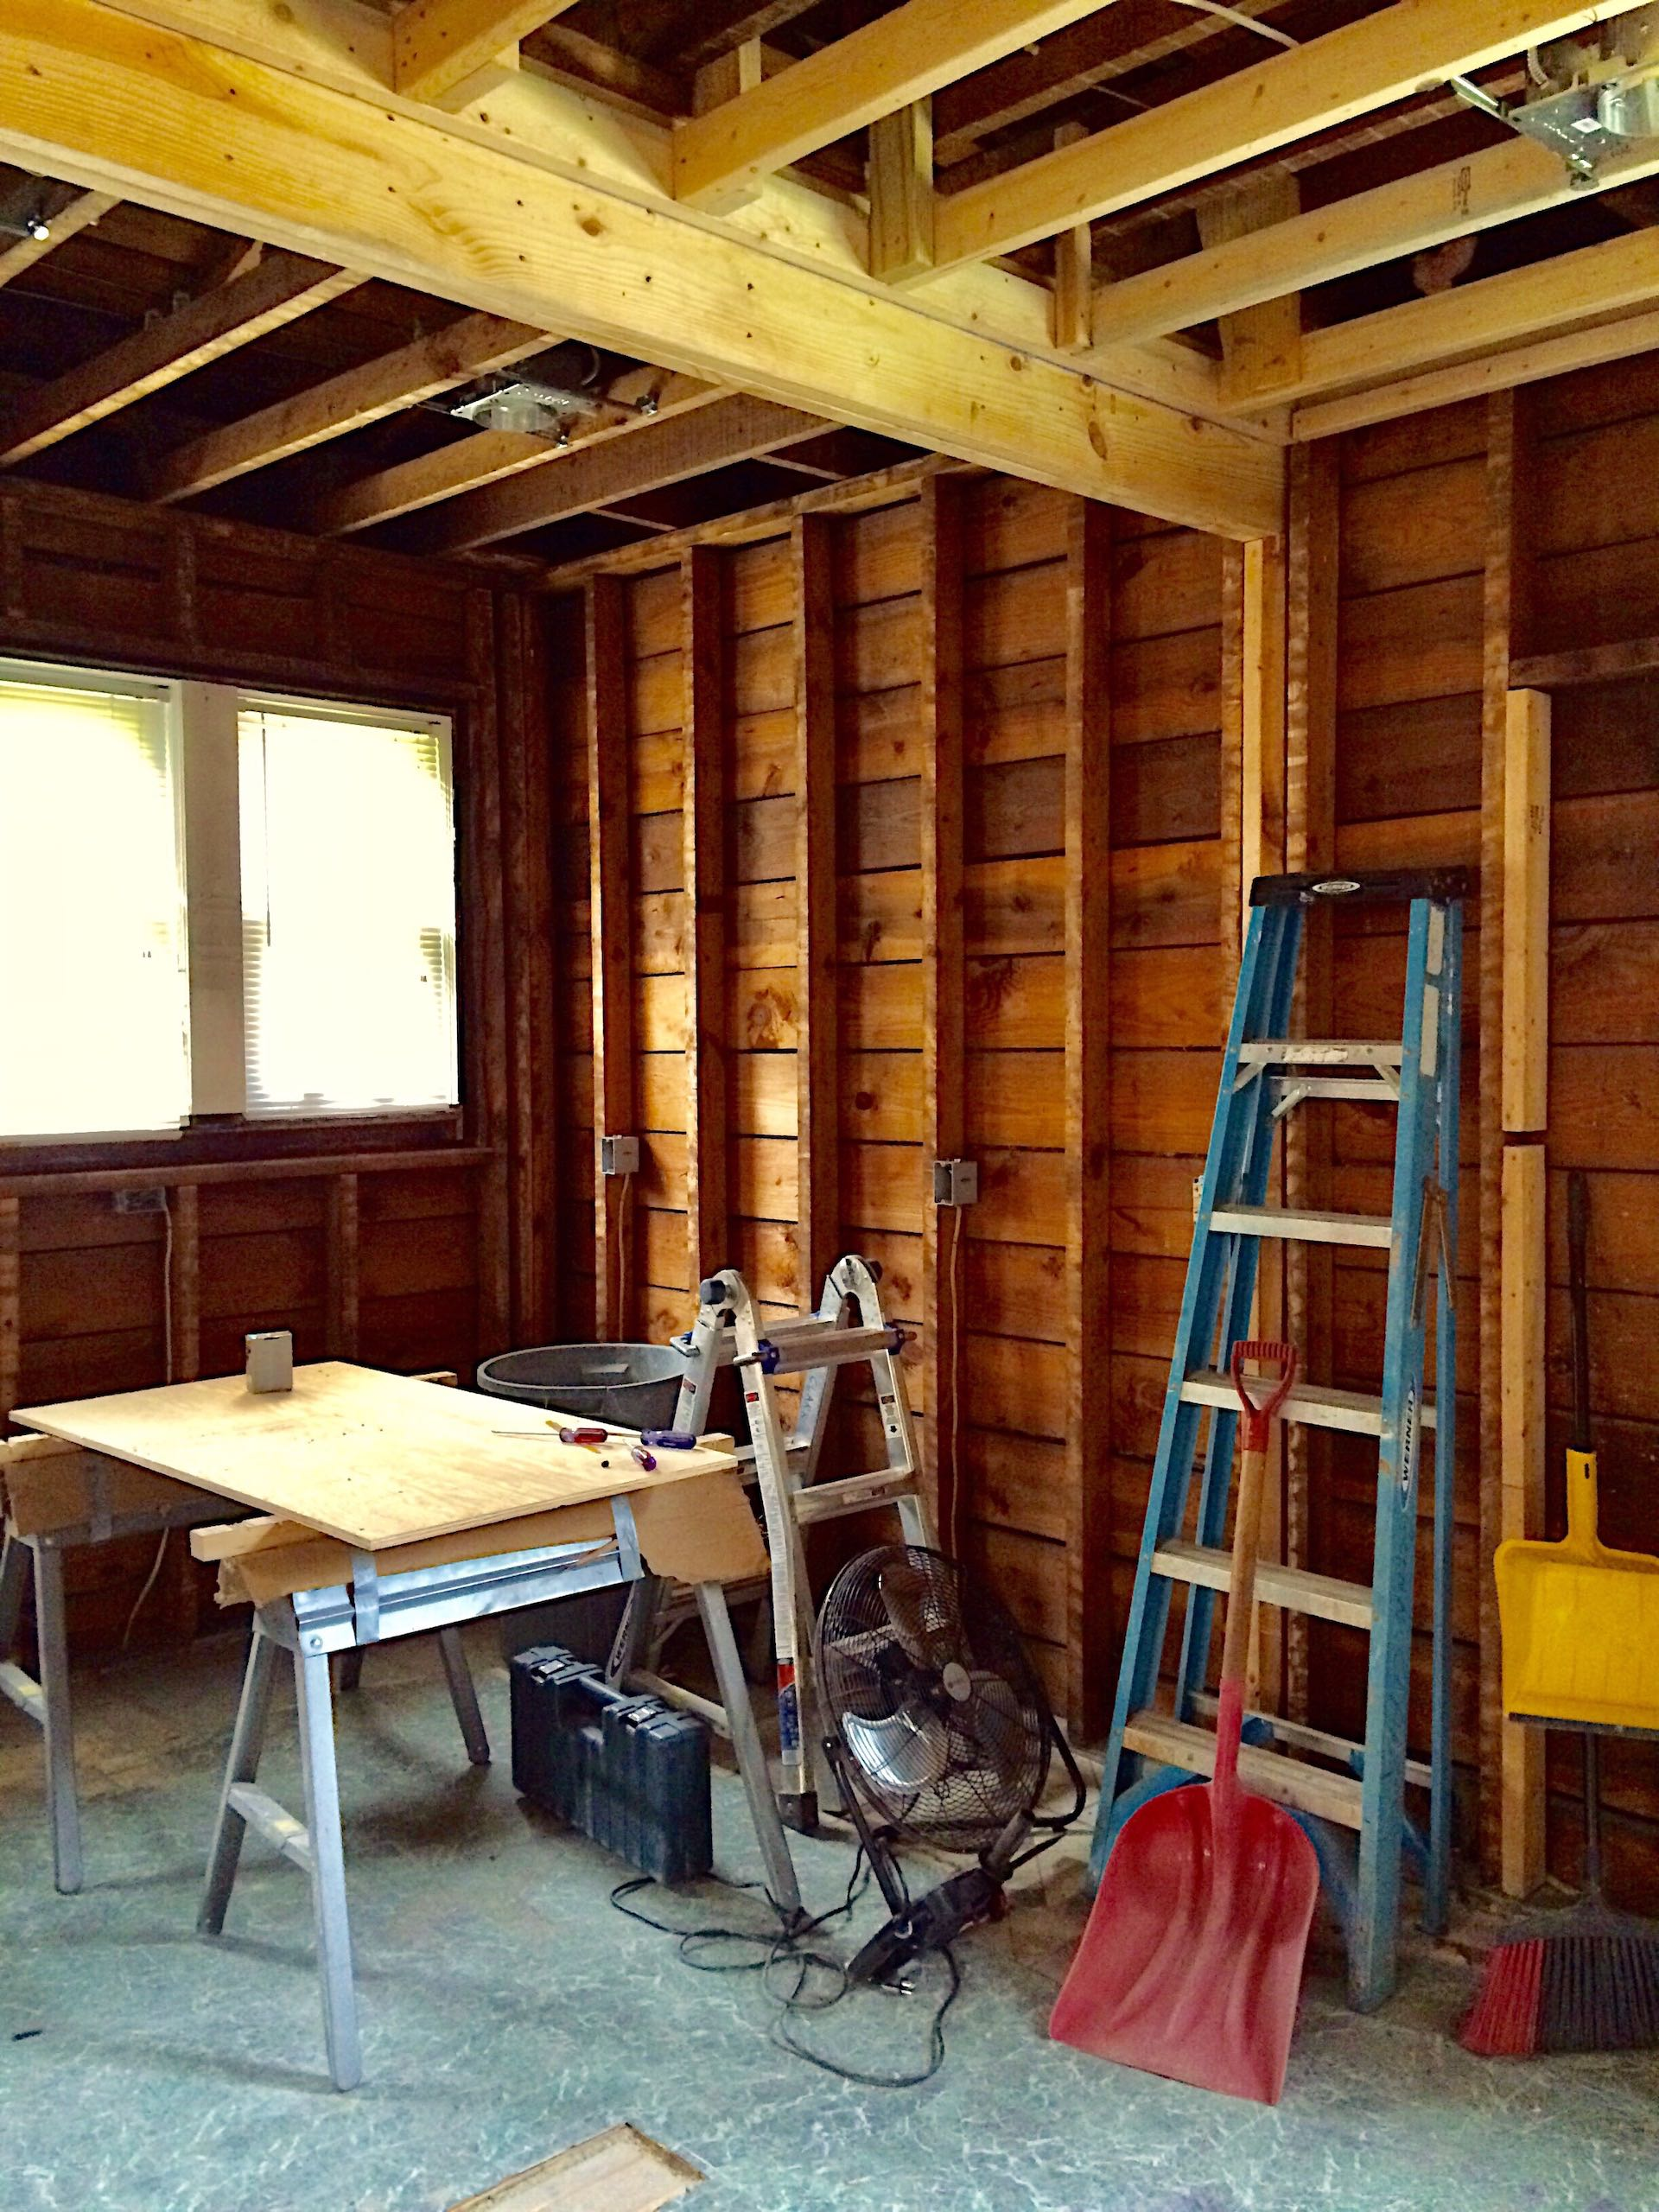 a-kitchen-in-a-very-old-home-is-completely-gutted-to-make-way-for-a-more-modern-look-this-is-the-end_t20_4JGv1X Example Project 1